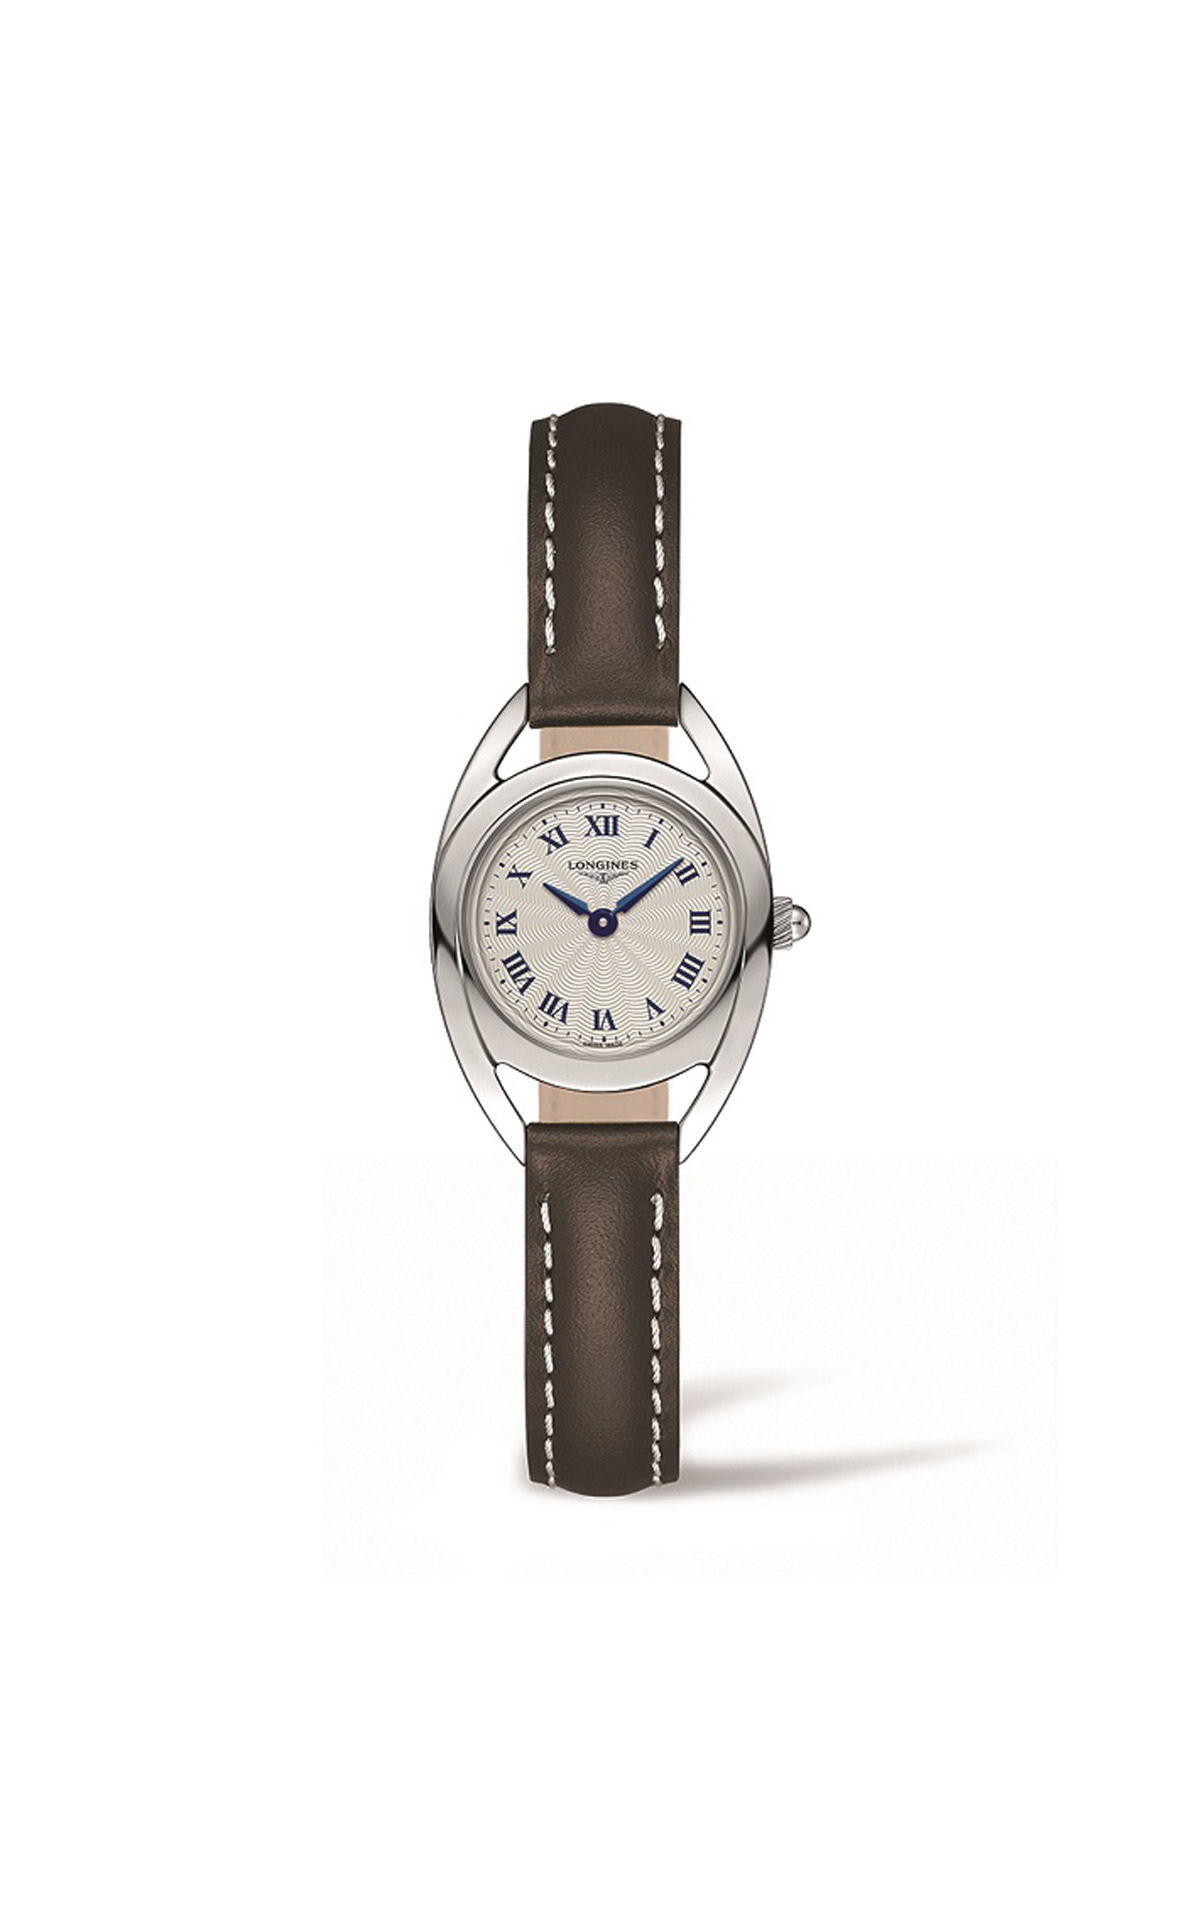 Watch Longines Equestrian quartz 23mm Hour Passion